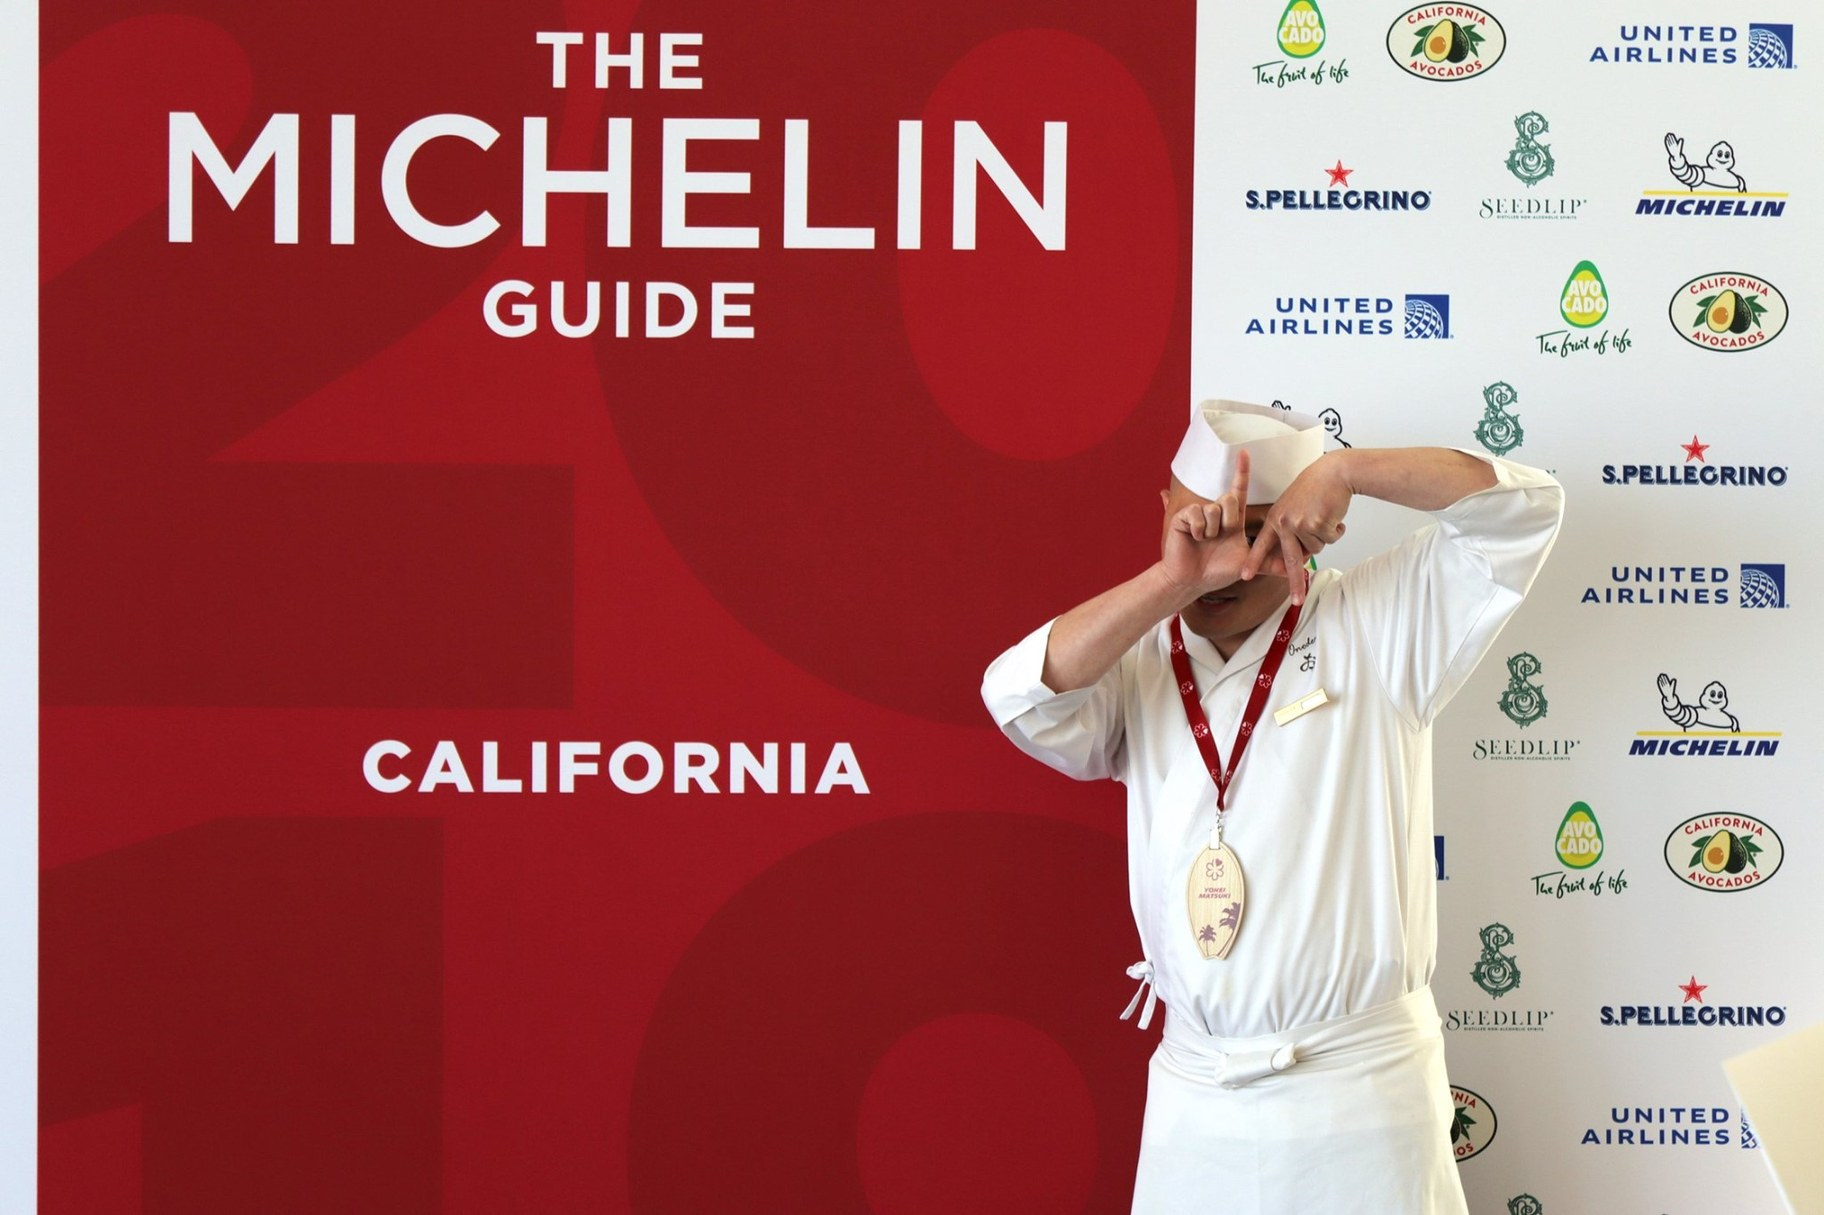 Michelin Guide c Michelin Guide Team.jpg